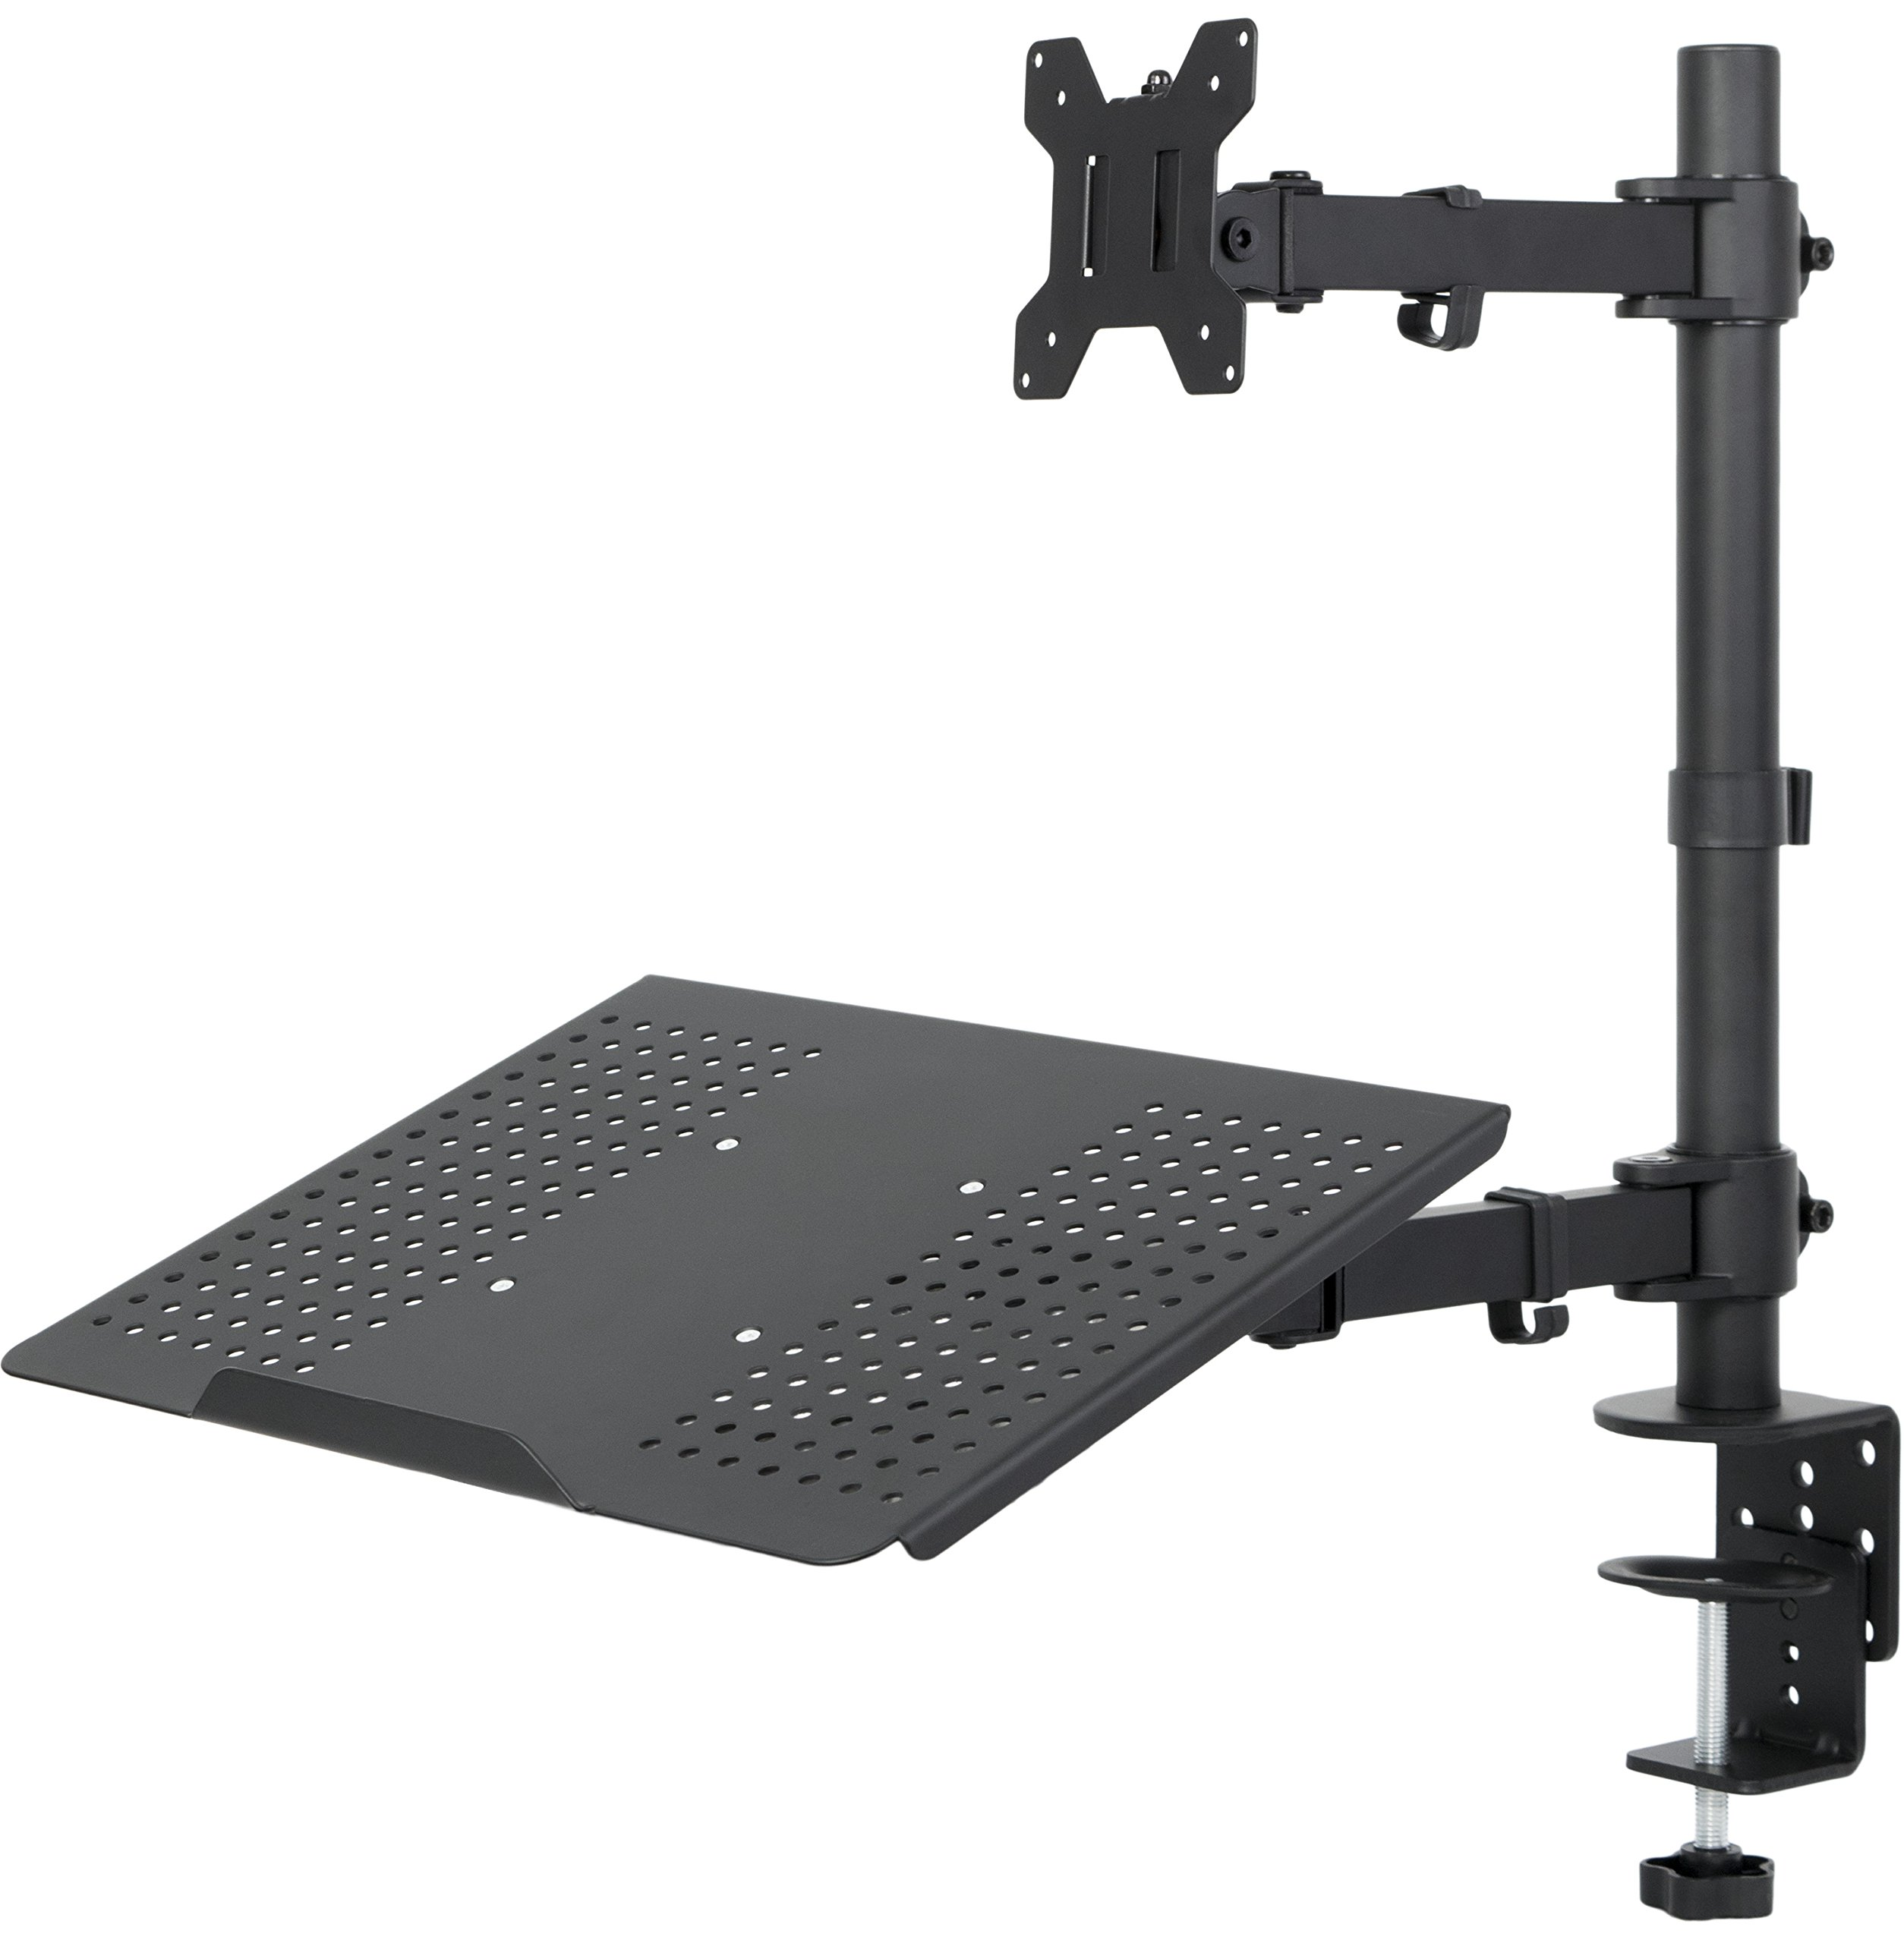 VIVO Fully Adjustable Single Computer Monitor and Laptop Desk Mount Combo Black Stand with Grommet Option | Fits 13'' to 24'' Screens and up to 17'' Laptops (STAND-V002C)